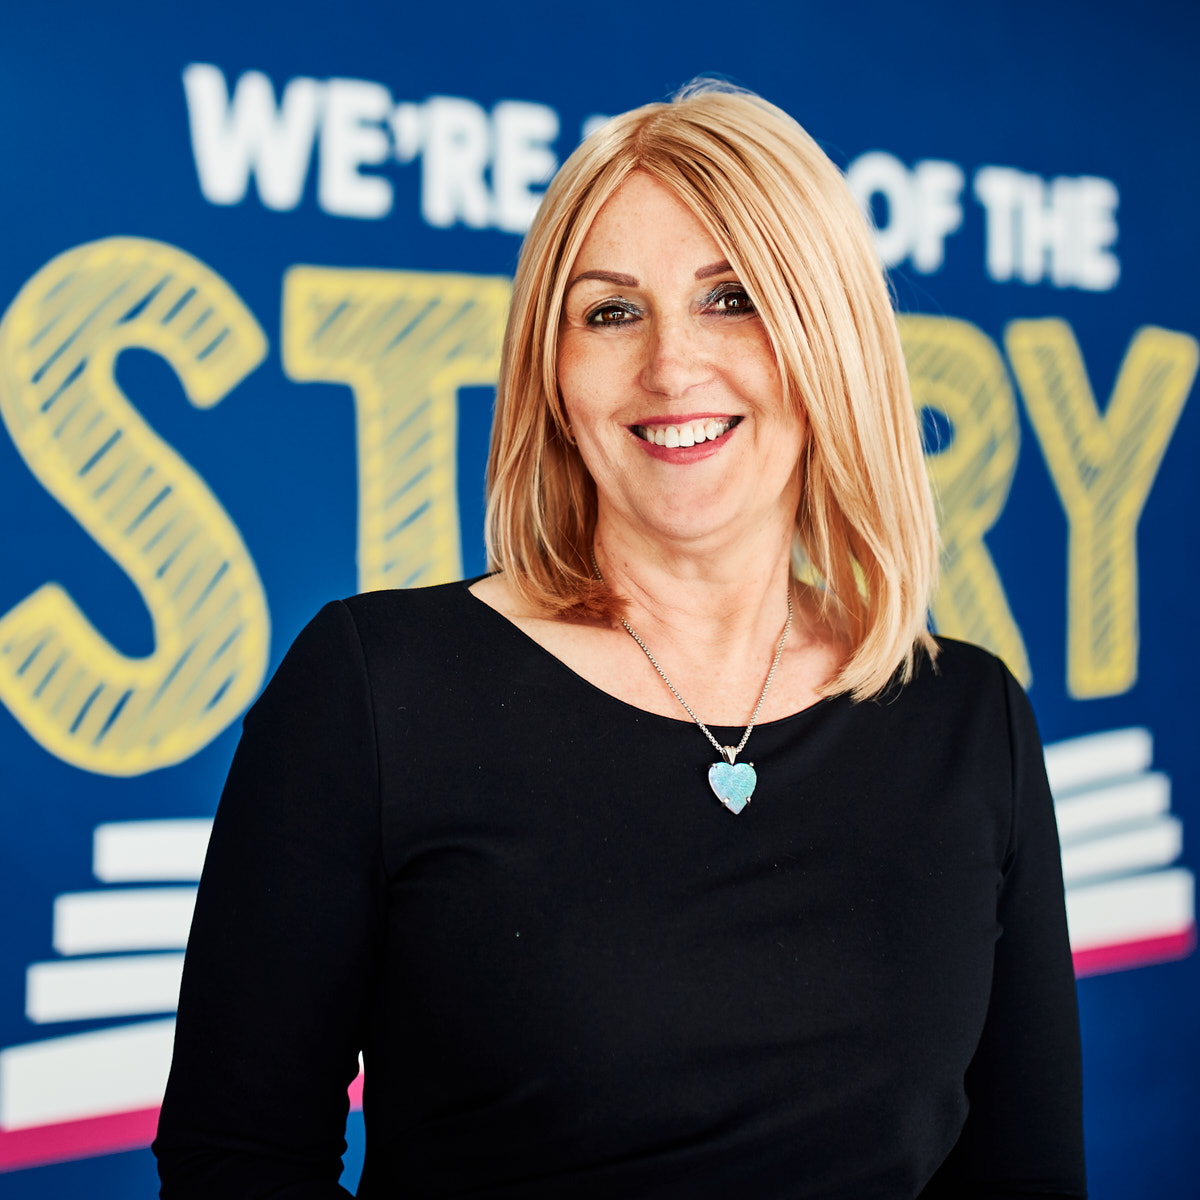 Above: Karen Hubbard, ceo of Card Factory is feeling confident it can deliver a strong year end.